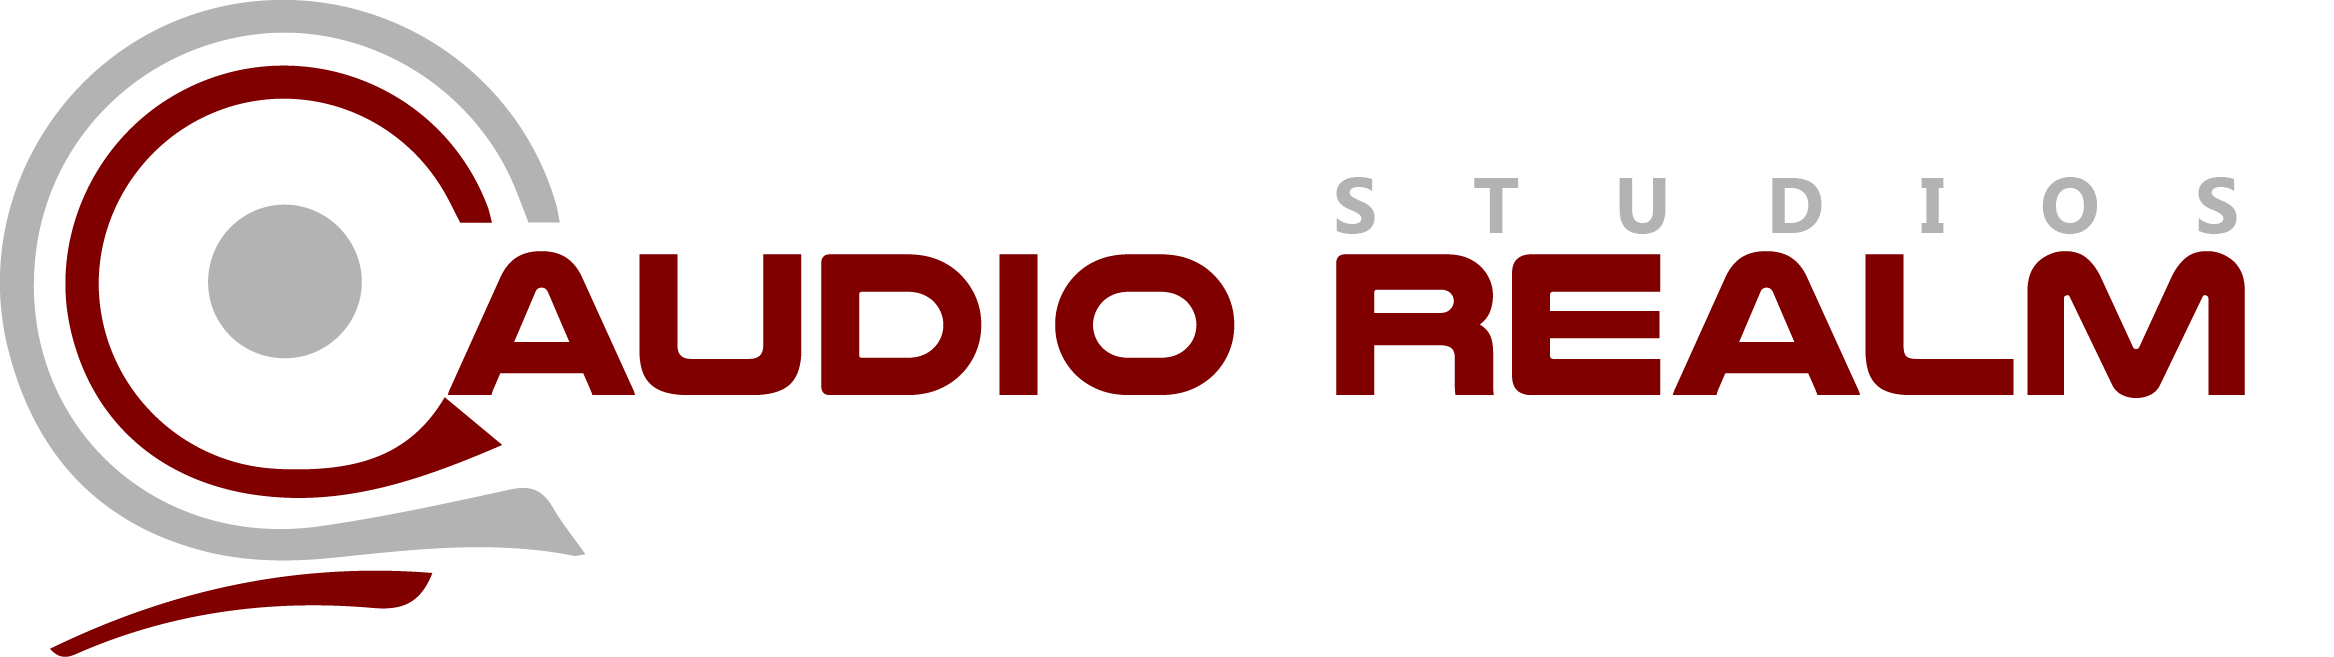 Audio Realm logo